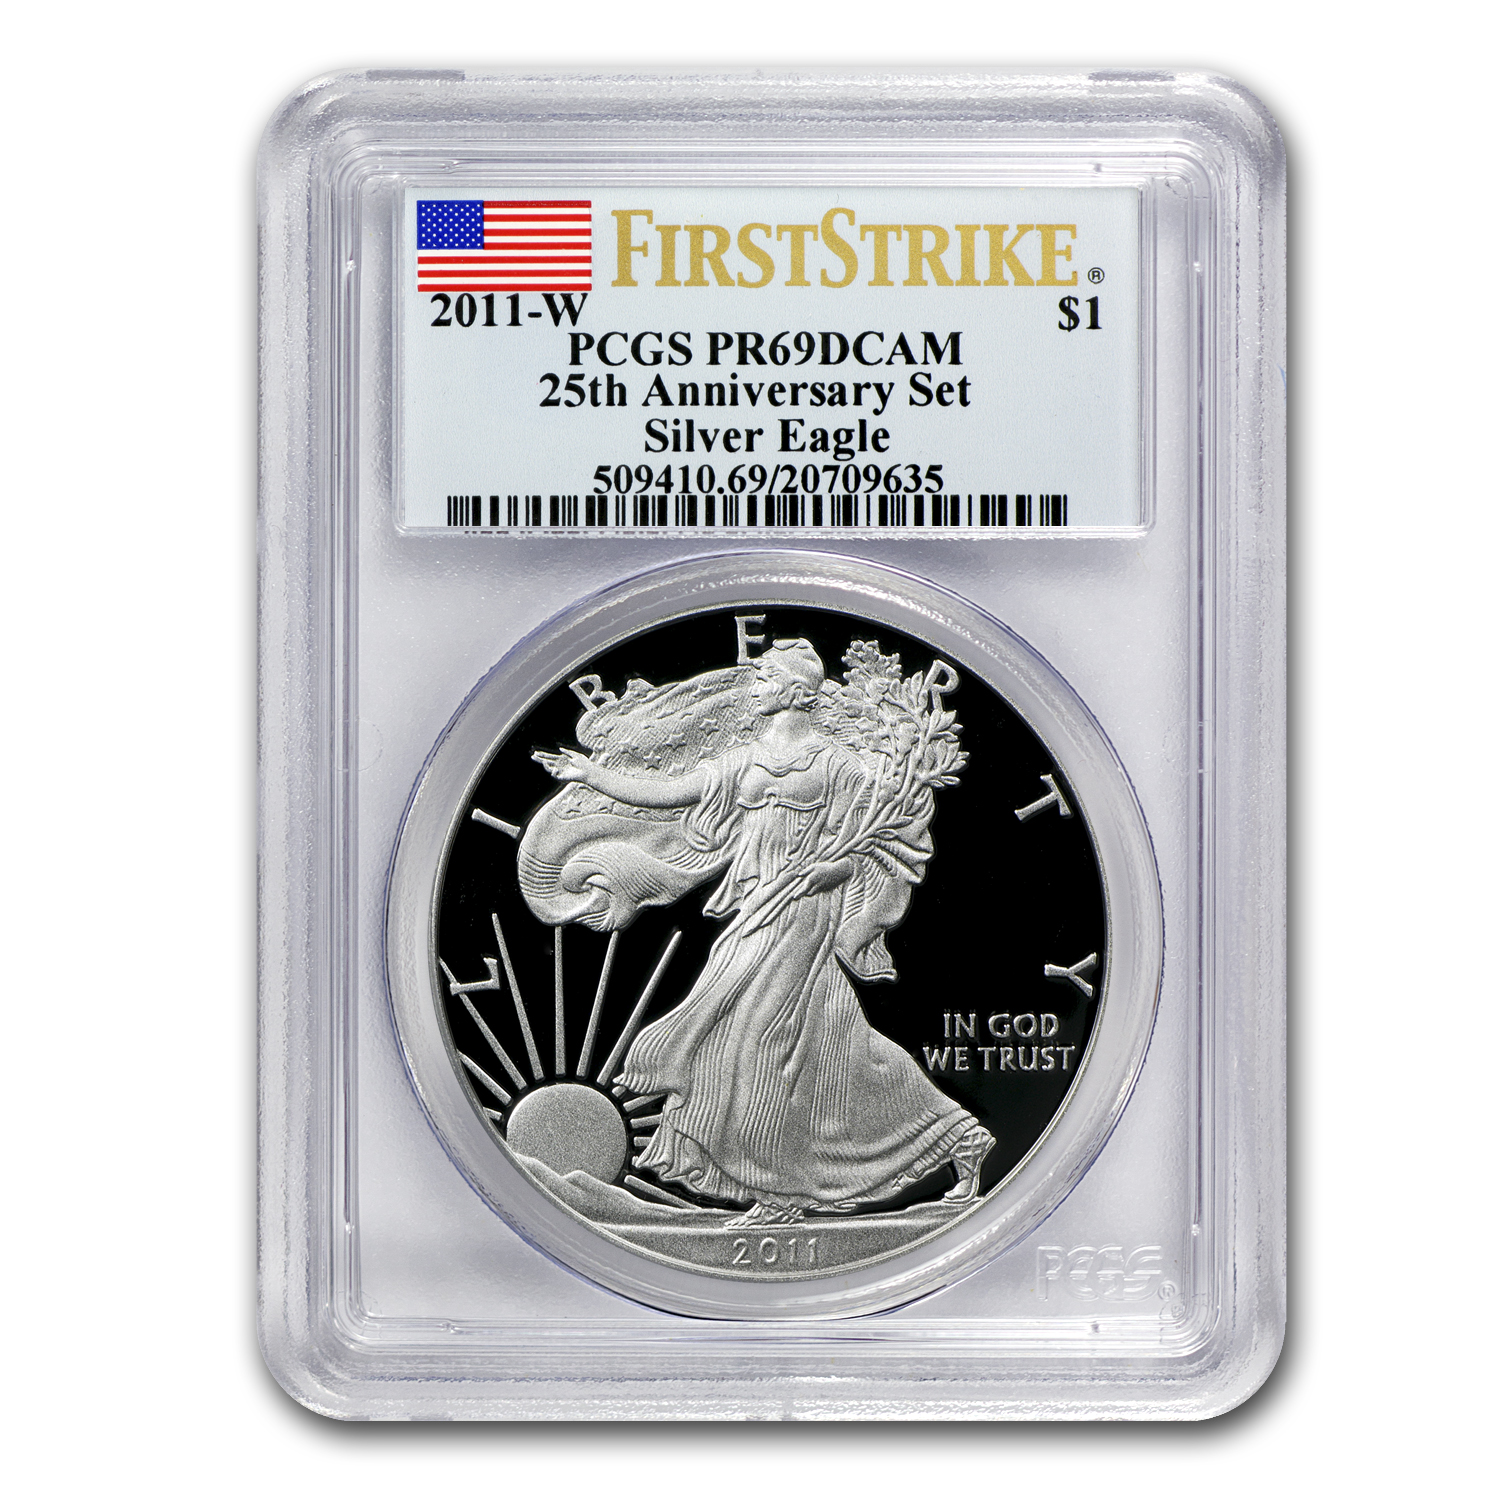 2011-W Proof Silver Eagle 25th Anniv PR-69 PCGS (FS) Blue Label